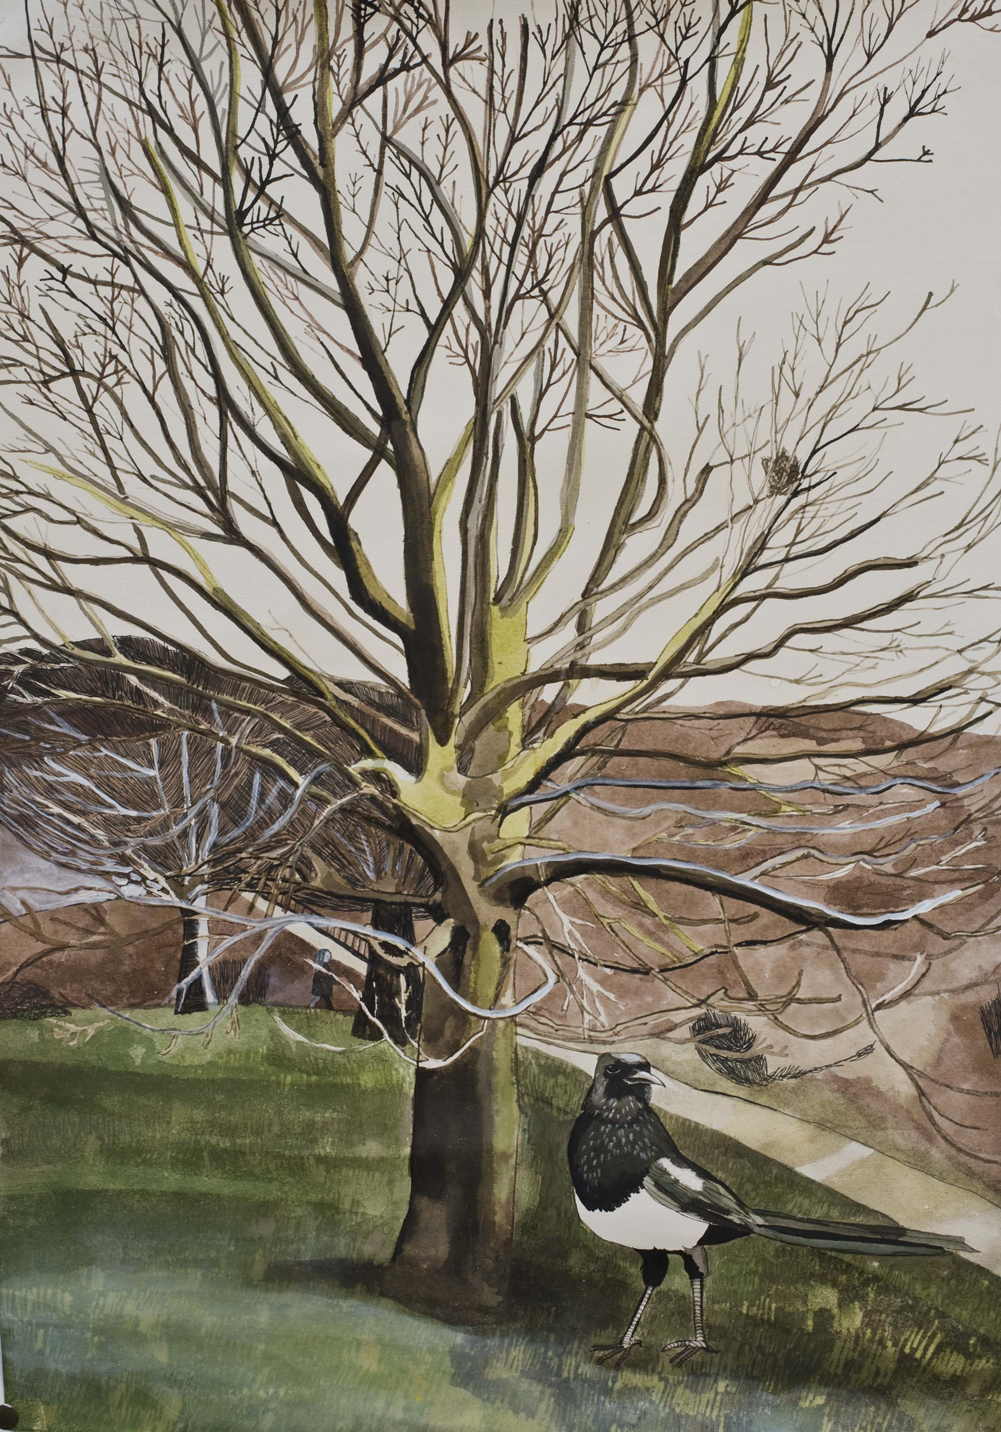 Magpie Morning, Hampstead Heath,2012, mixed media on paper,72 x 52 cm